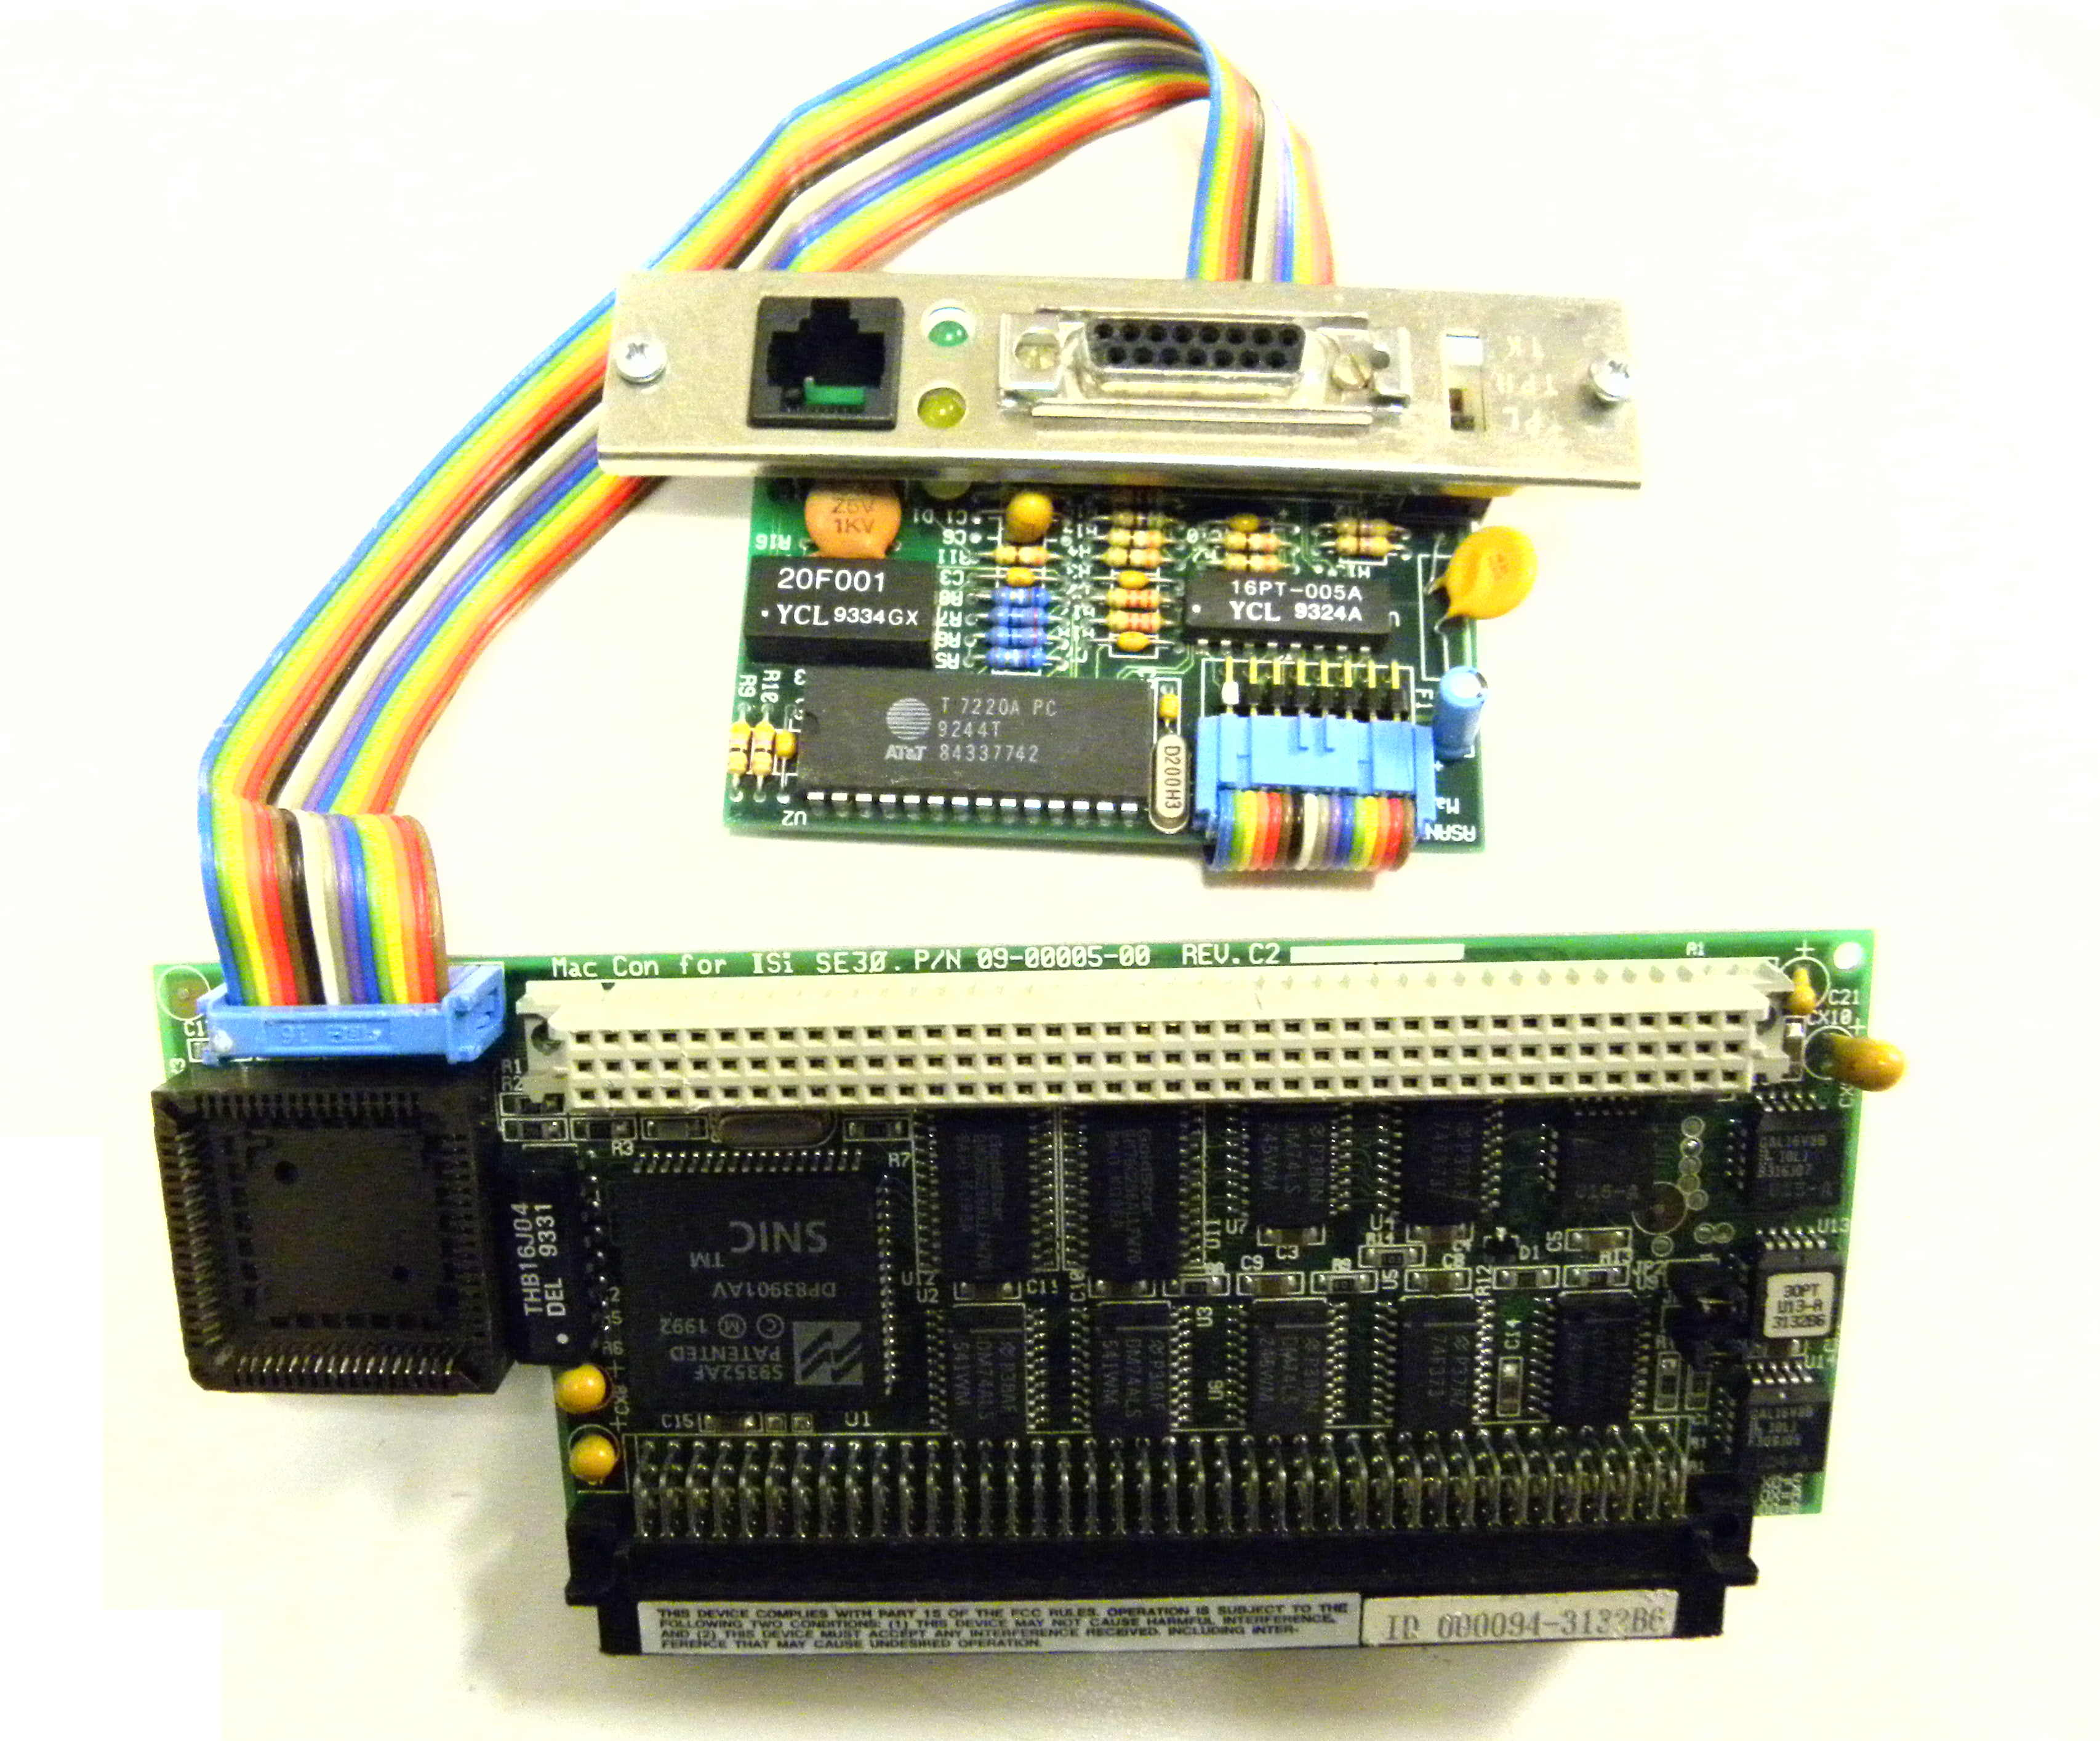 PCI bus networking cards